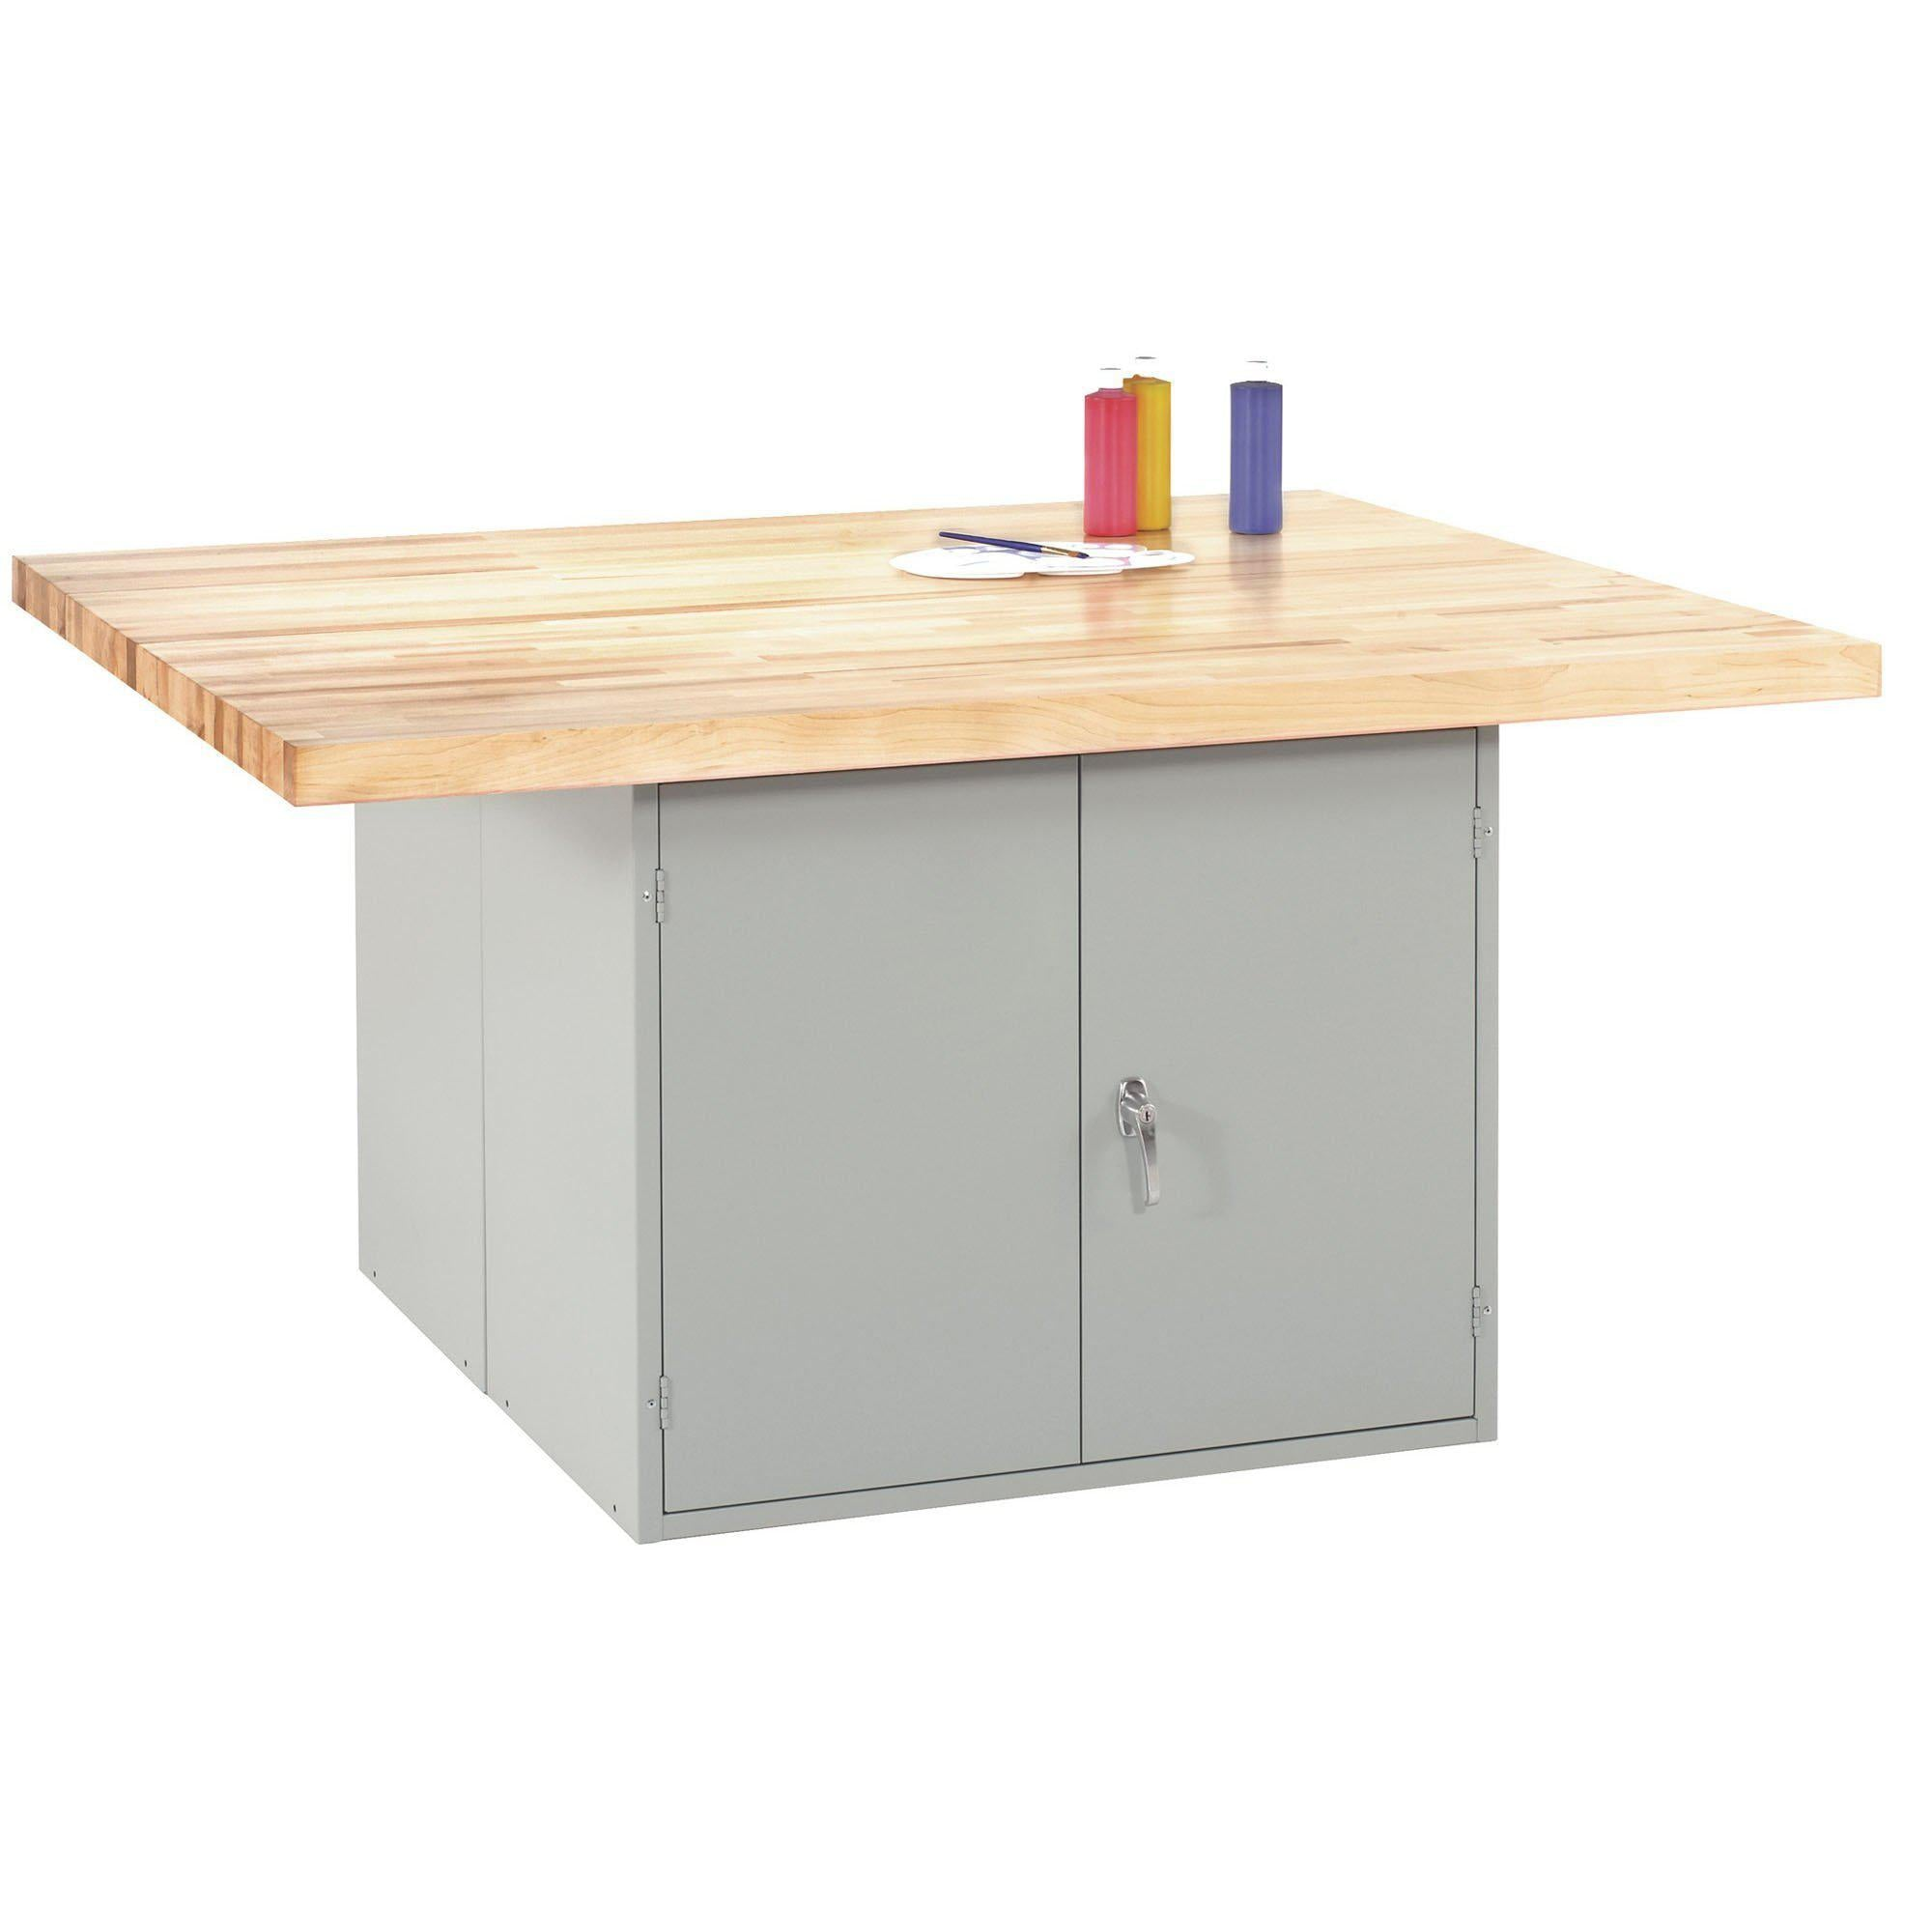 Four-Station Steel Workbench with 2 Door Units